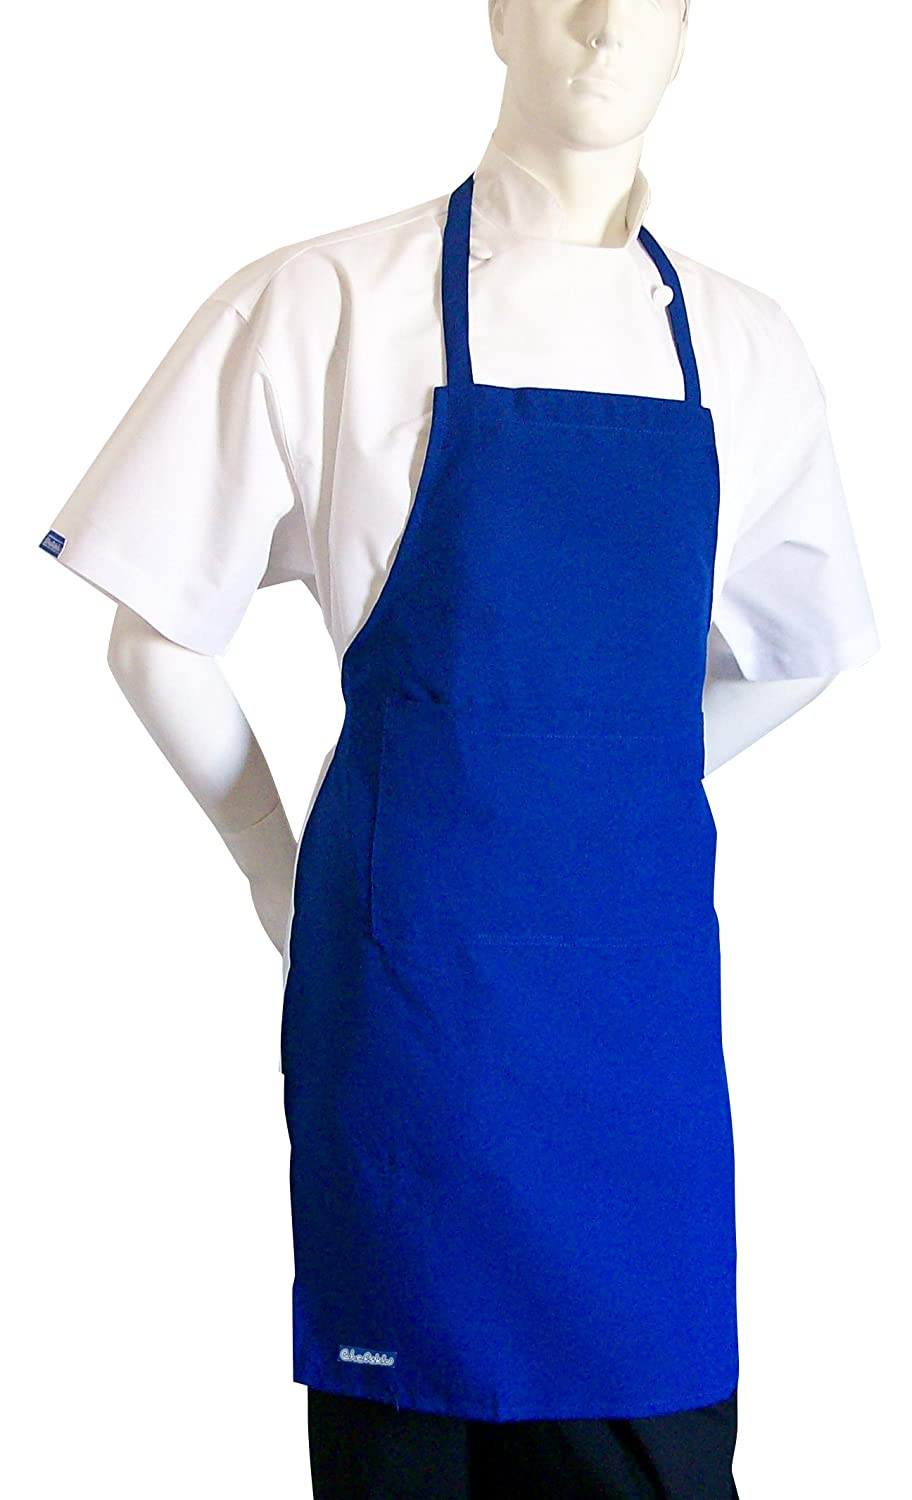 Blue apron android - Amazon Com Chefskin Royal Blue Apron Kids Children Fits 7 12 Yr Olds 19x28 Inches Real Fabric Home Kitchen